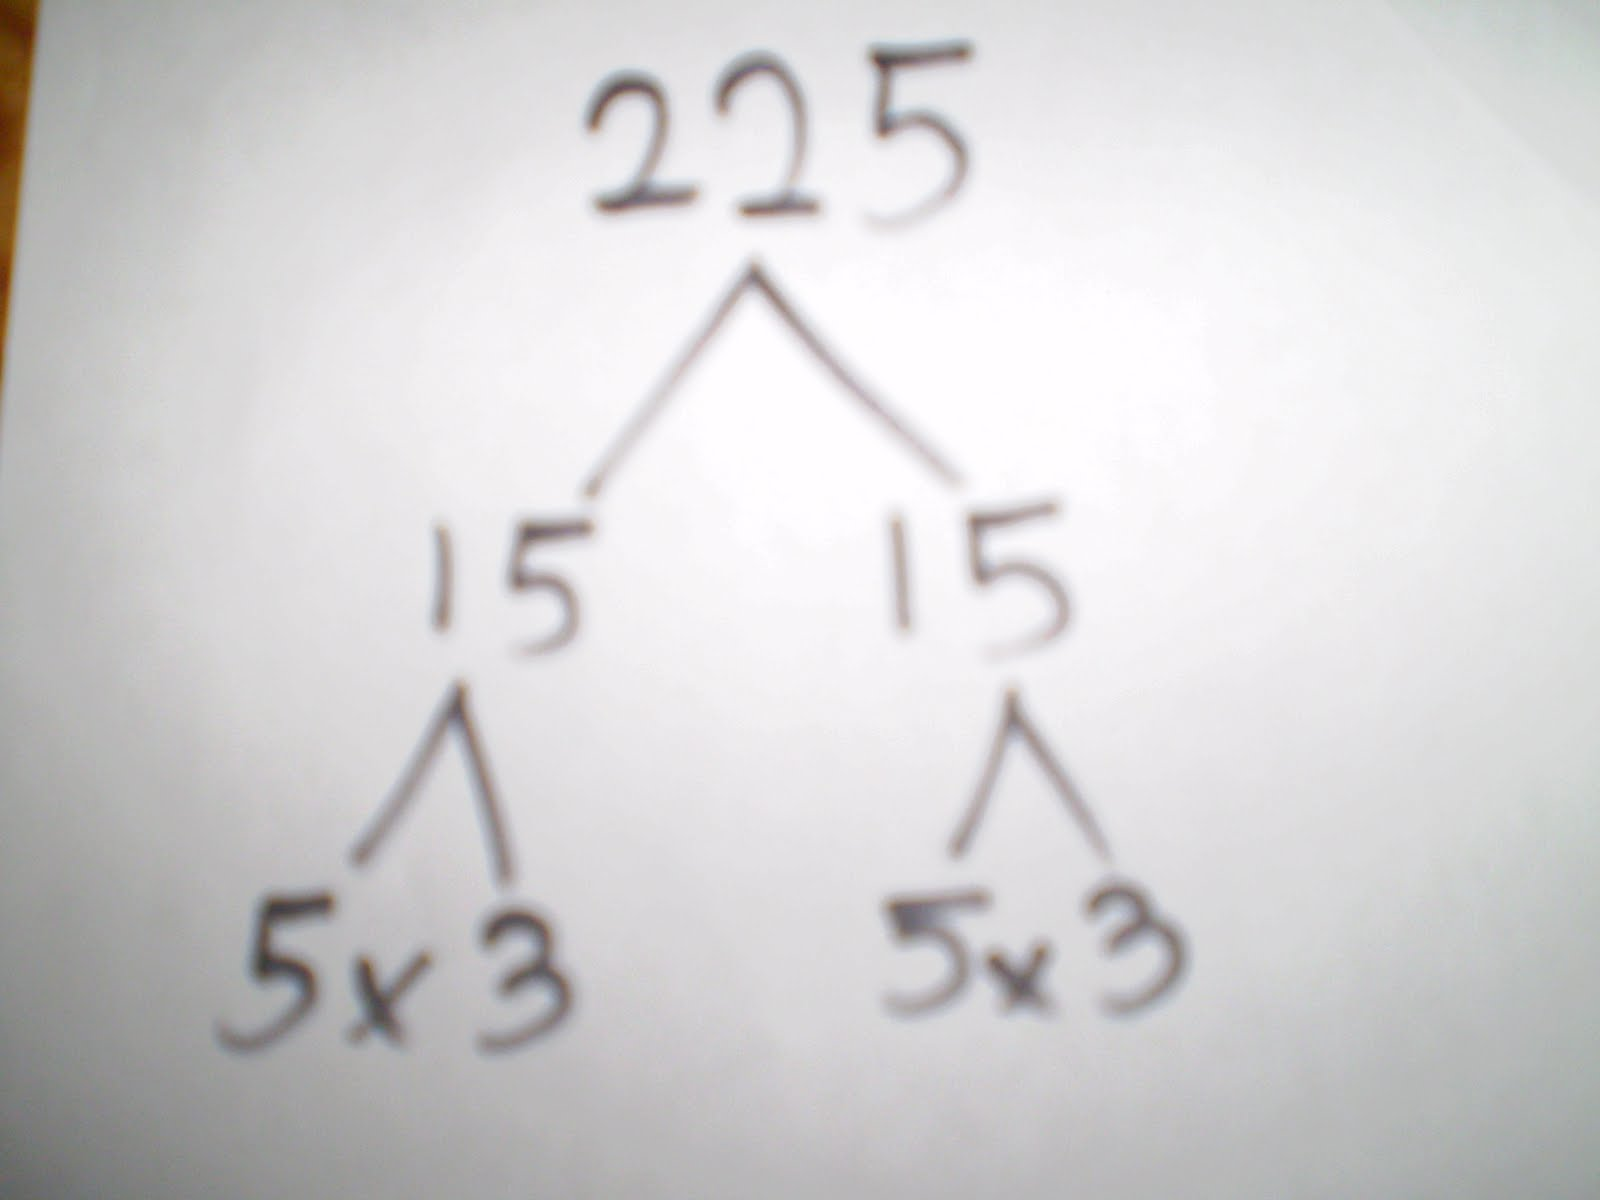 817 Math 2010 Karen S Square Root Scribepost You can calculate the square root of any number , just change 225 up above in the textbox. 817 math 2010 blogger